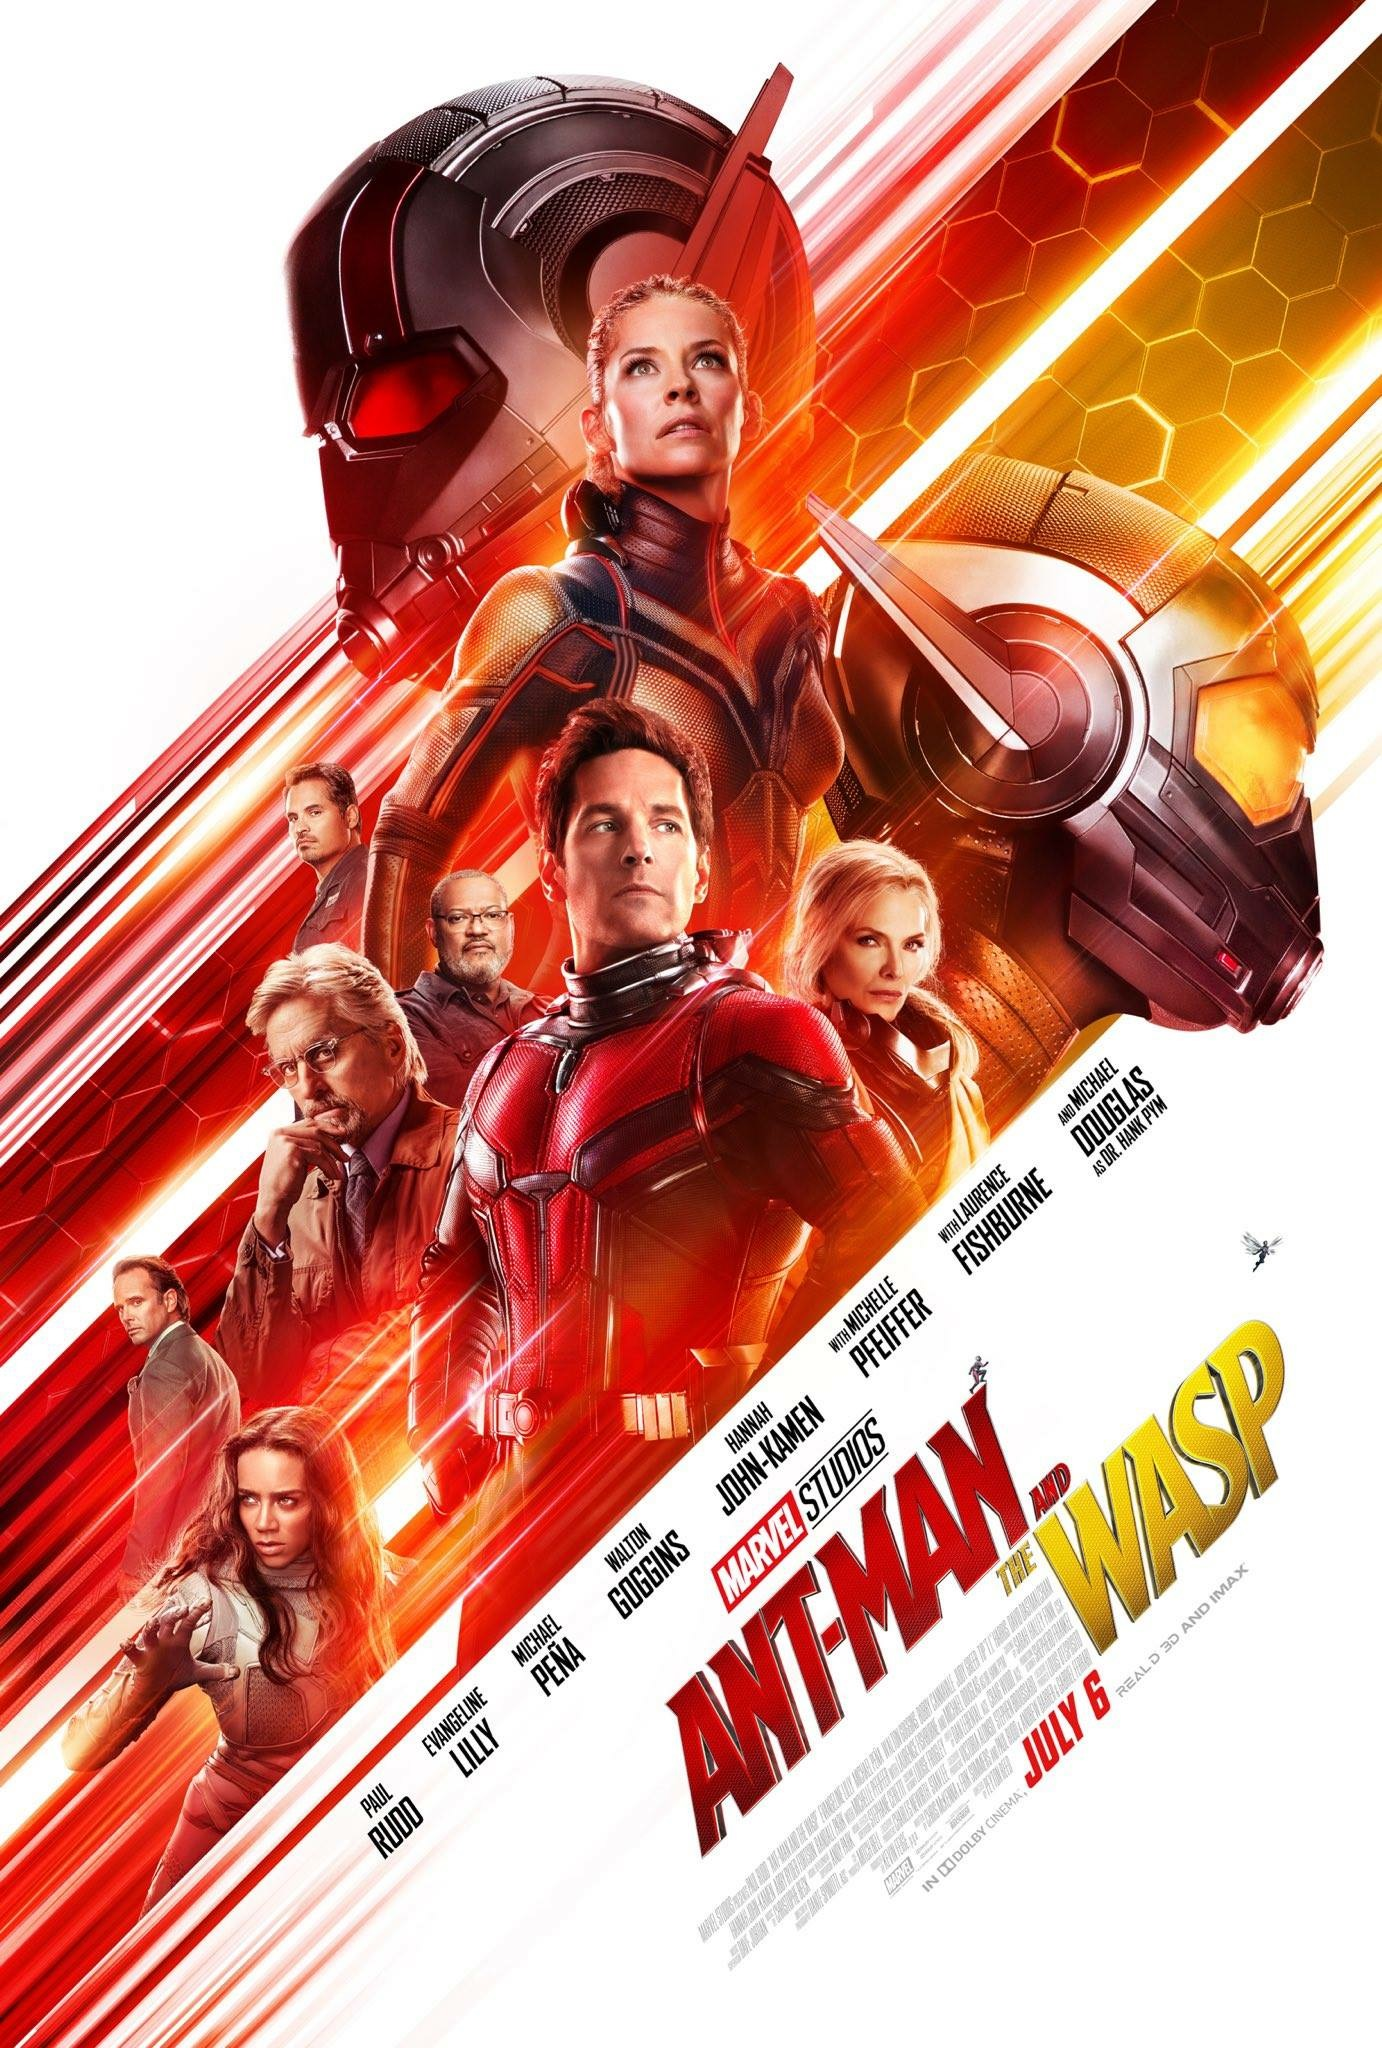 ant-man-and-the-wasp-3d-movie.JPG